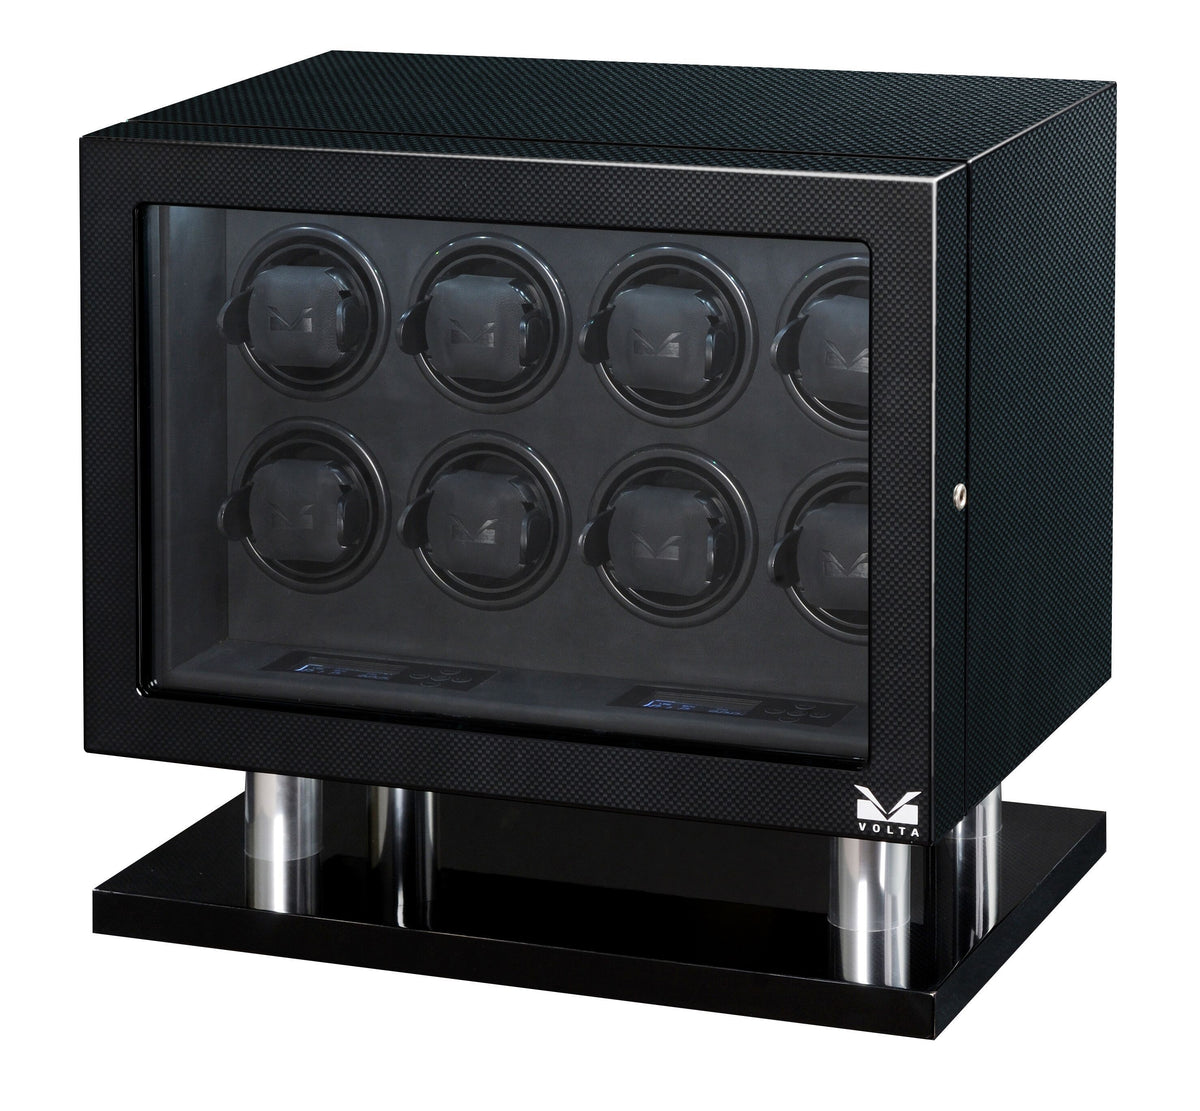 Volta - 31560080 8 Watch Winder Carbon Fiber Armadillo Safe and Vault